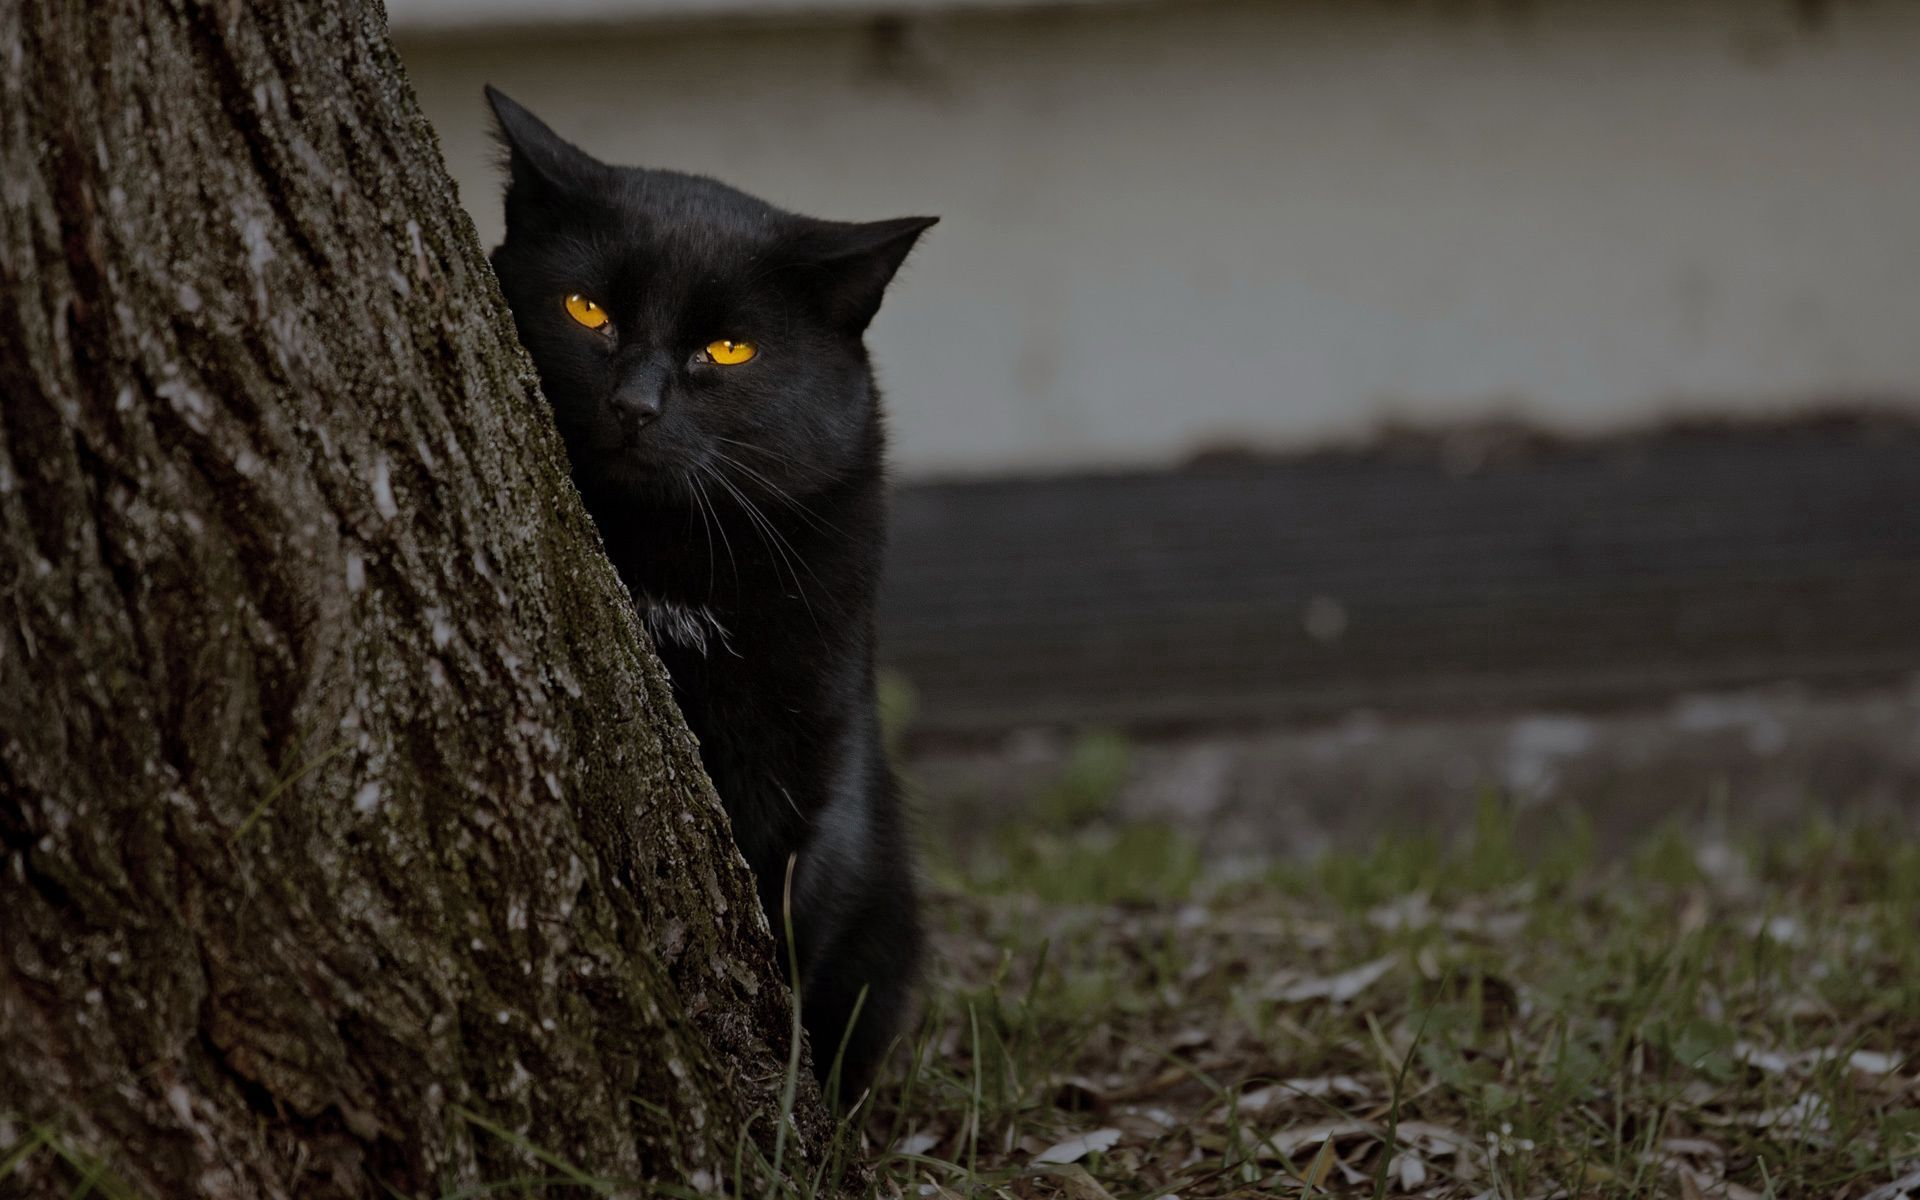 153426 download wallpaper Animals, Grass, Dark, Wood, Cat, Tree, Hide, Bark screensavers and pictures for free